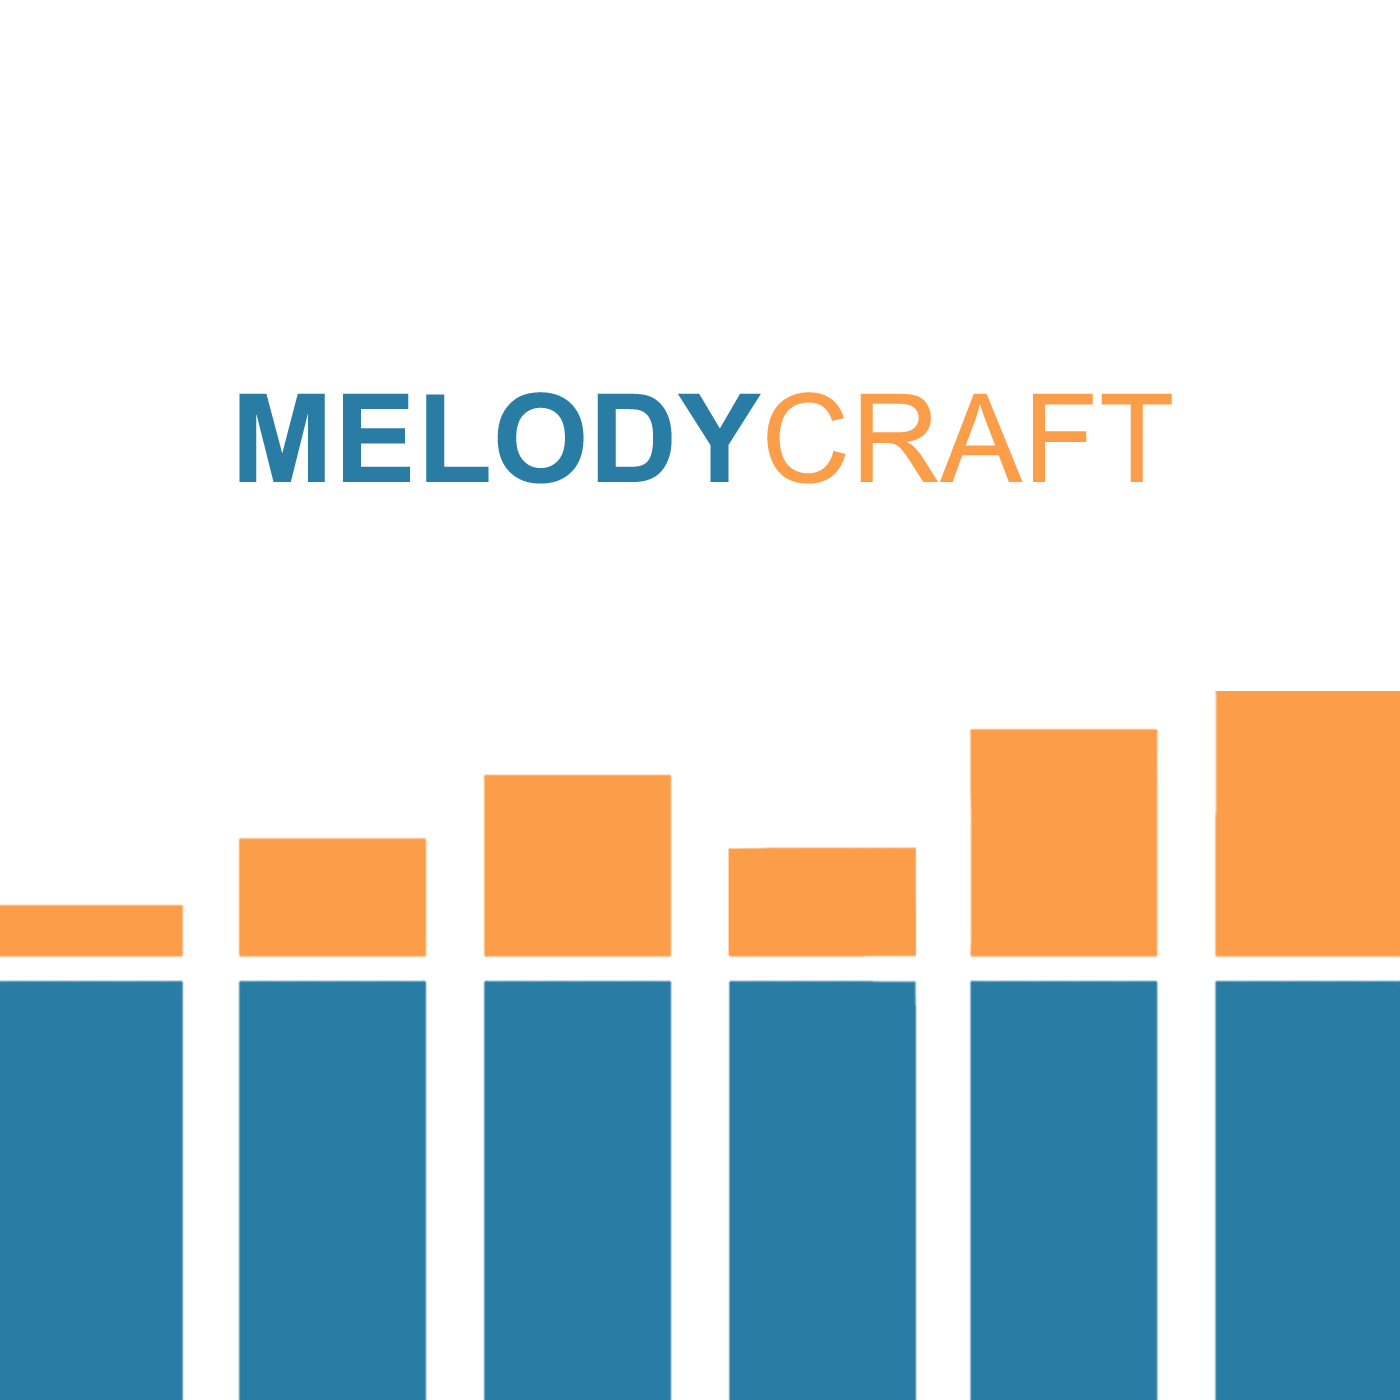 Melody Craft